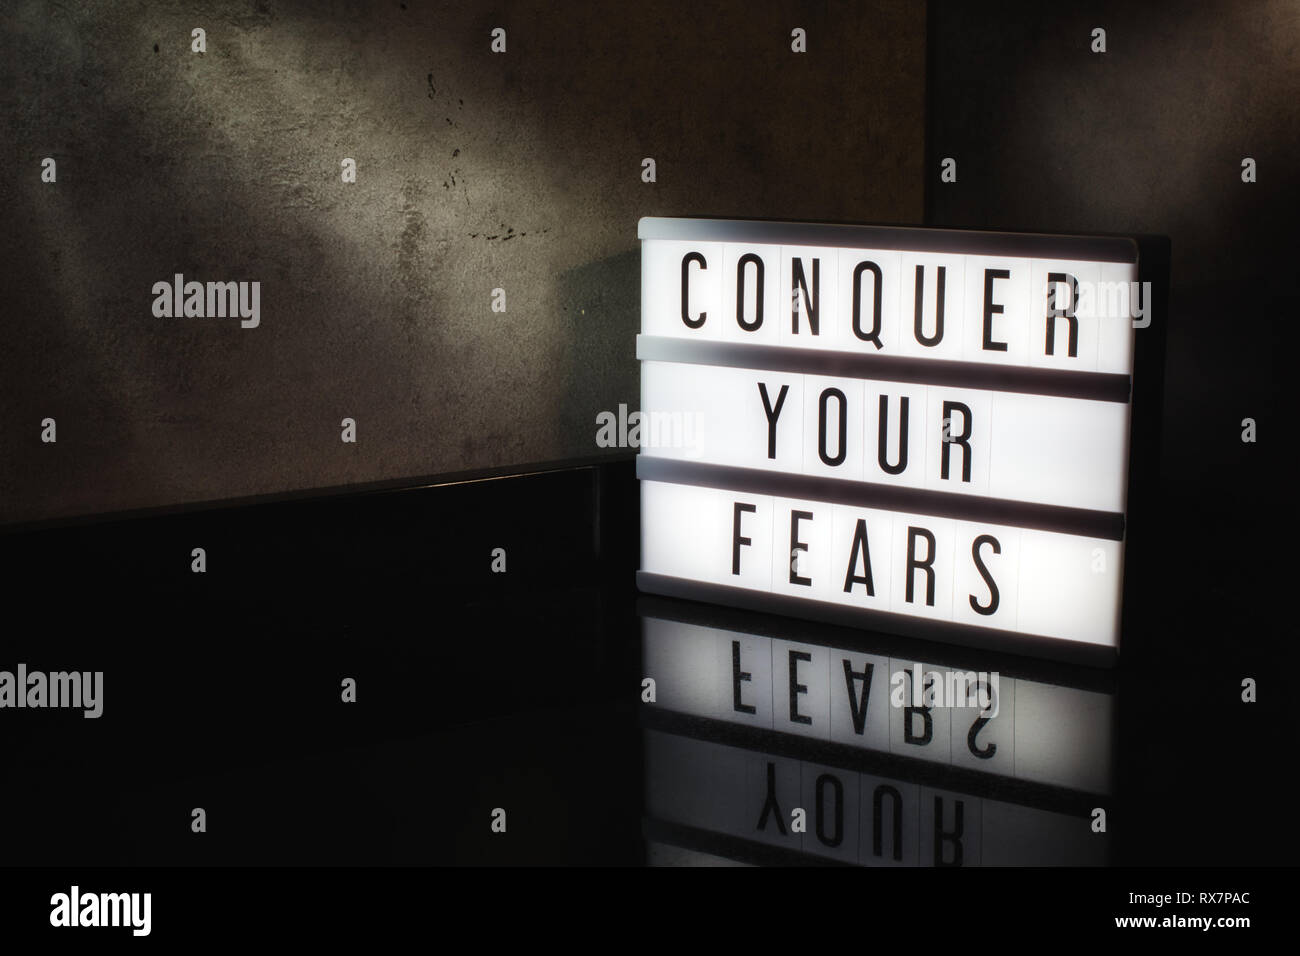 Conquer your fears motivational message on a light box in a cinematic moody background - Stock Image